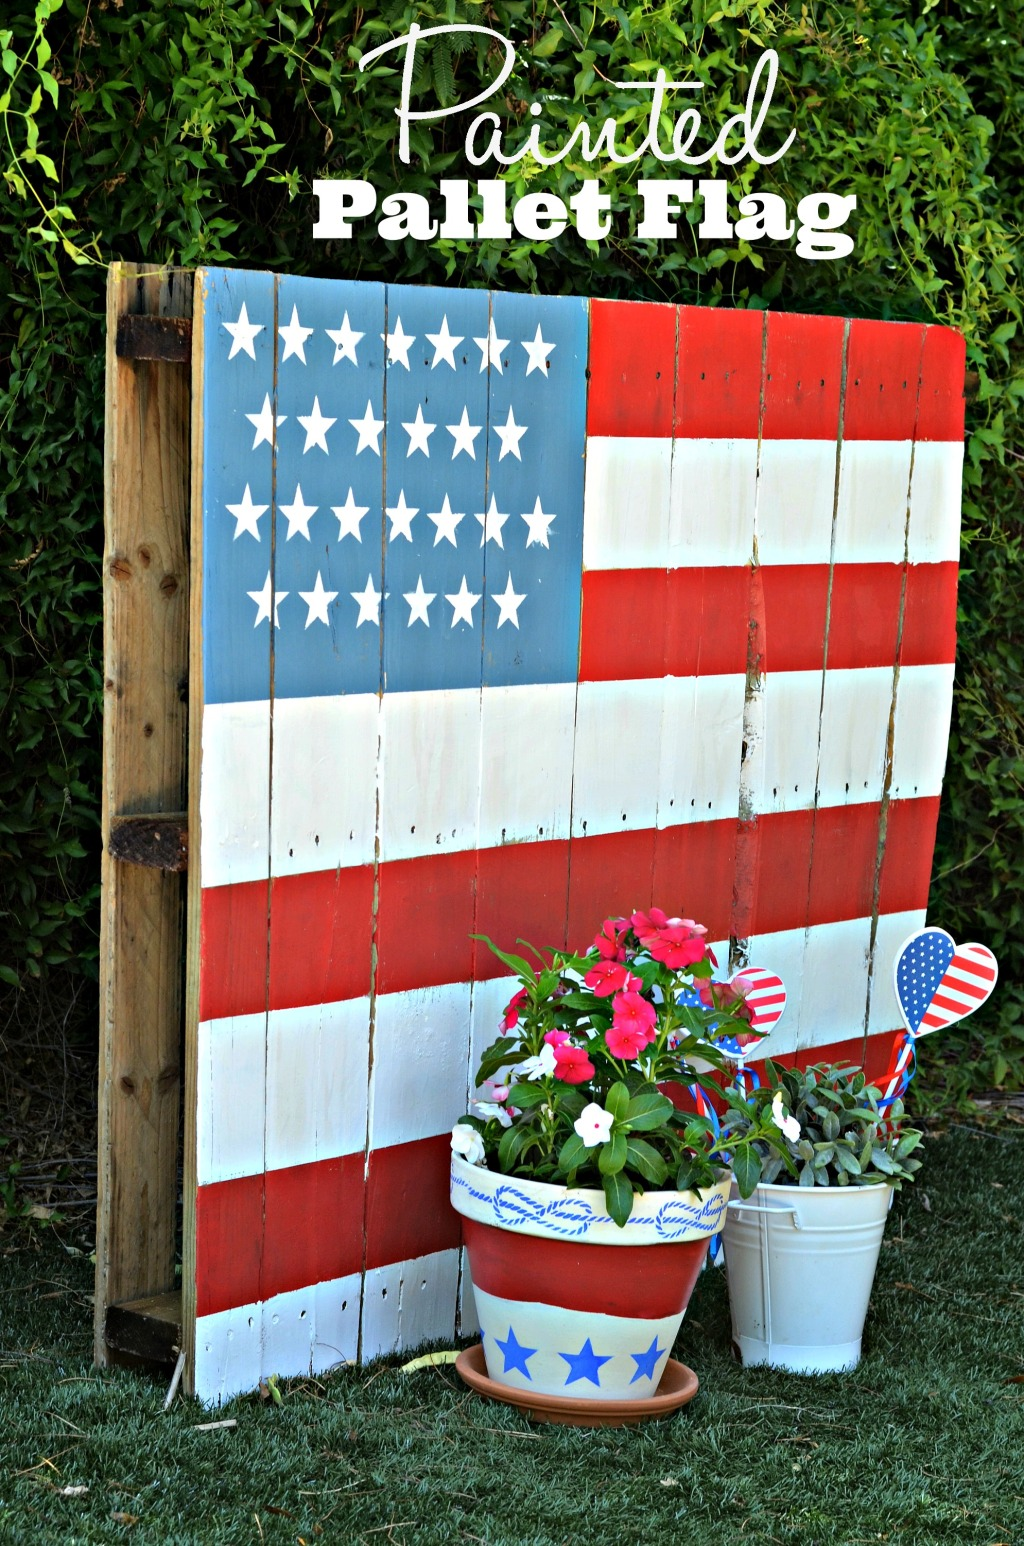 Painted Pallet Flag in Backyard